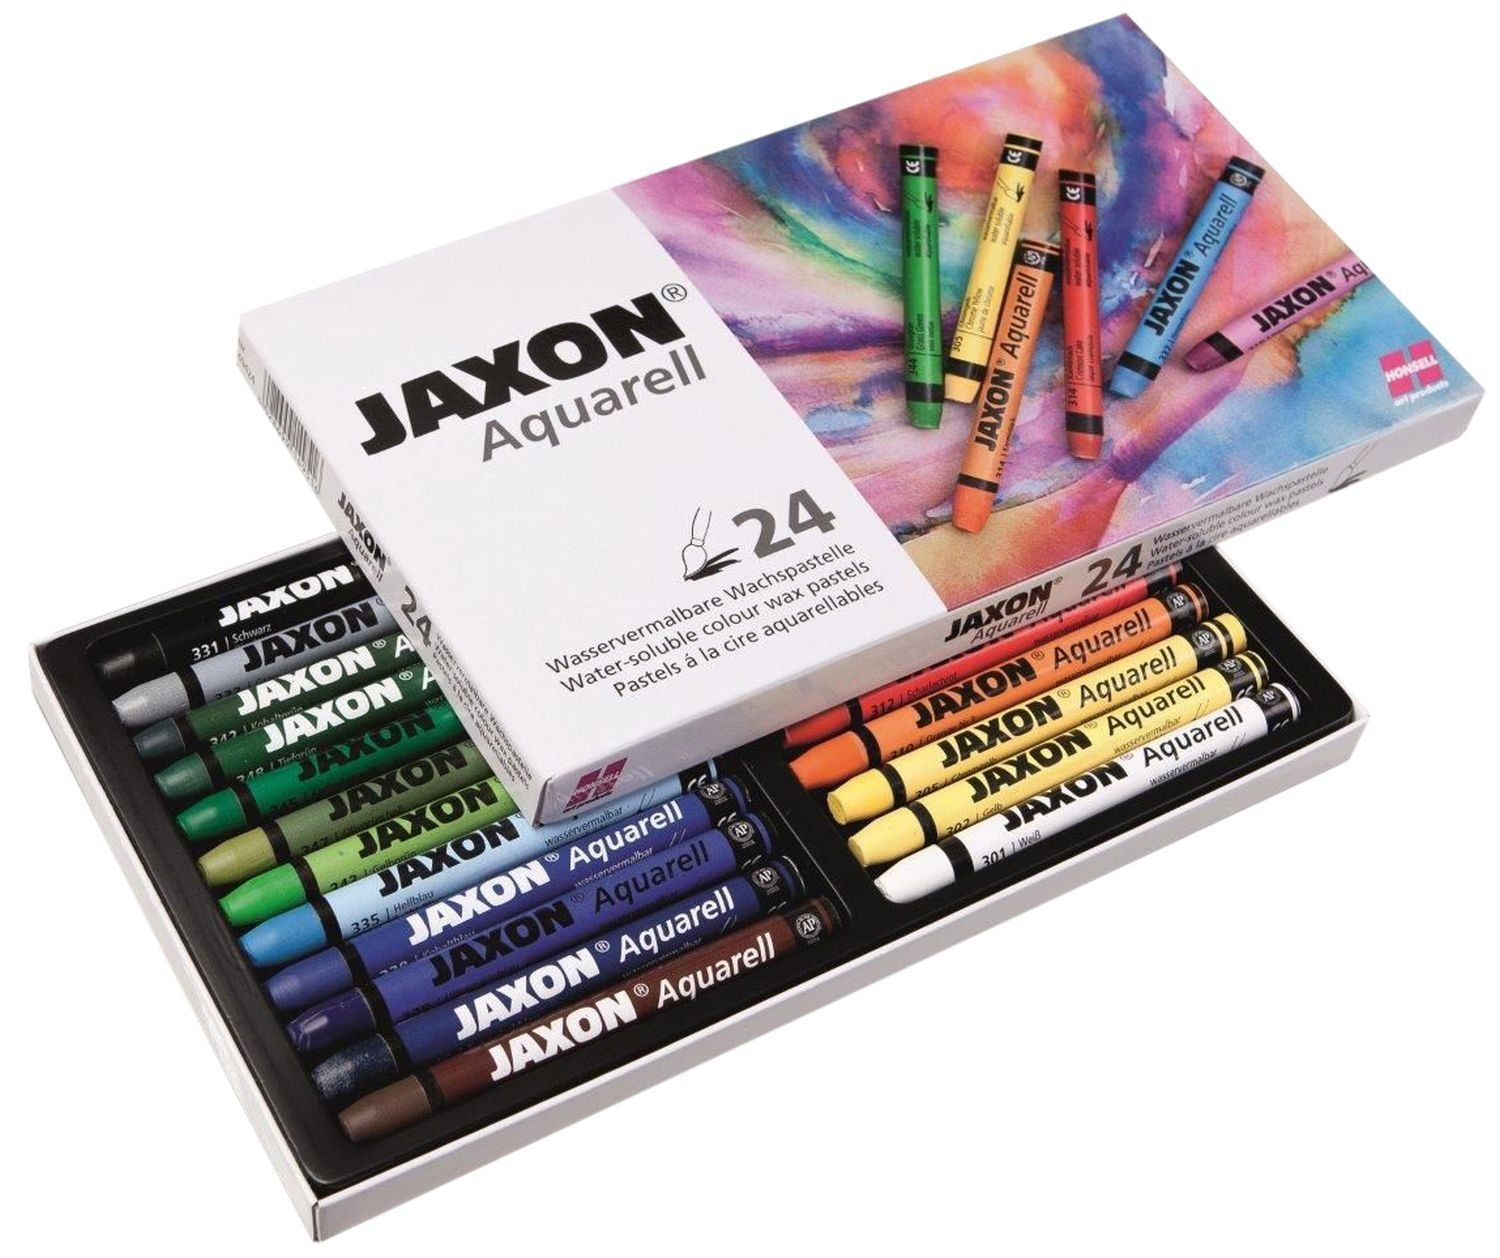 Jaxon By Honsell 49436 Aquarell Wachspastelle 24er Set